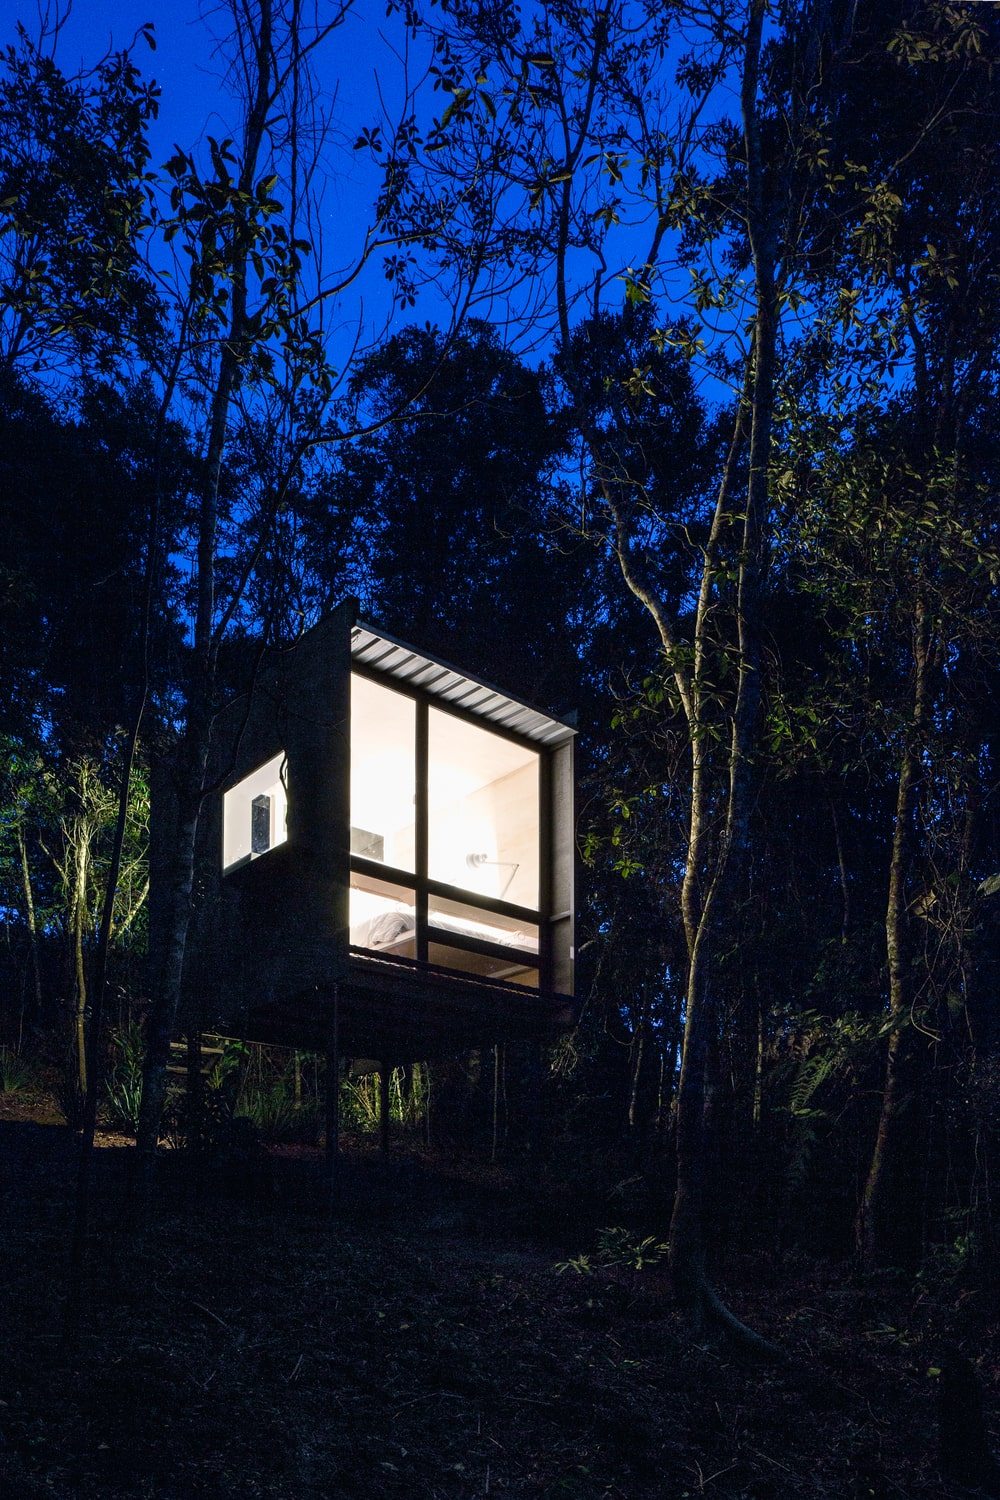 This is a nighttime view of the house showcasing the warm glow of the glass walls making it stand out against the surrounding landscape.